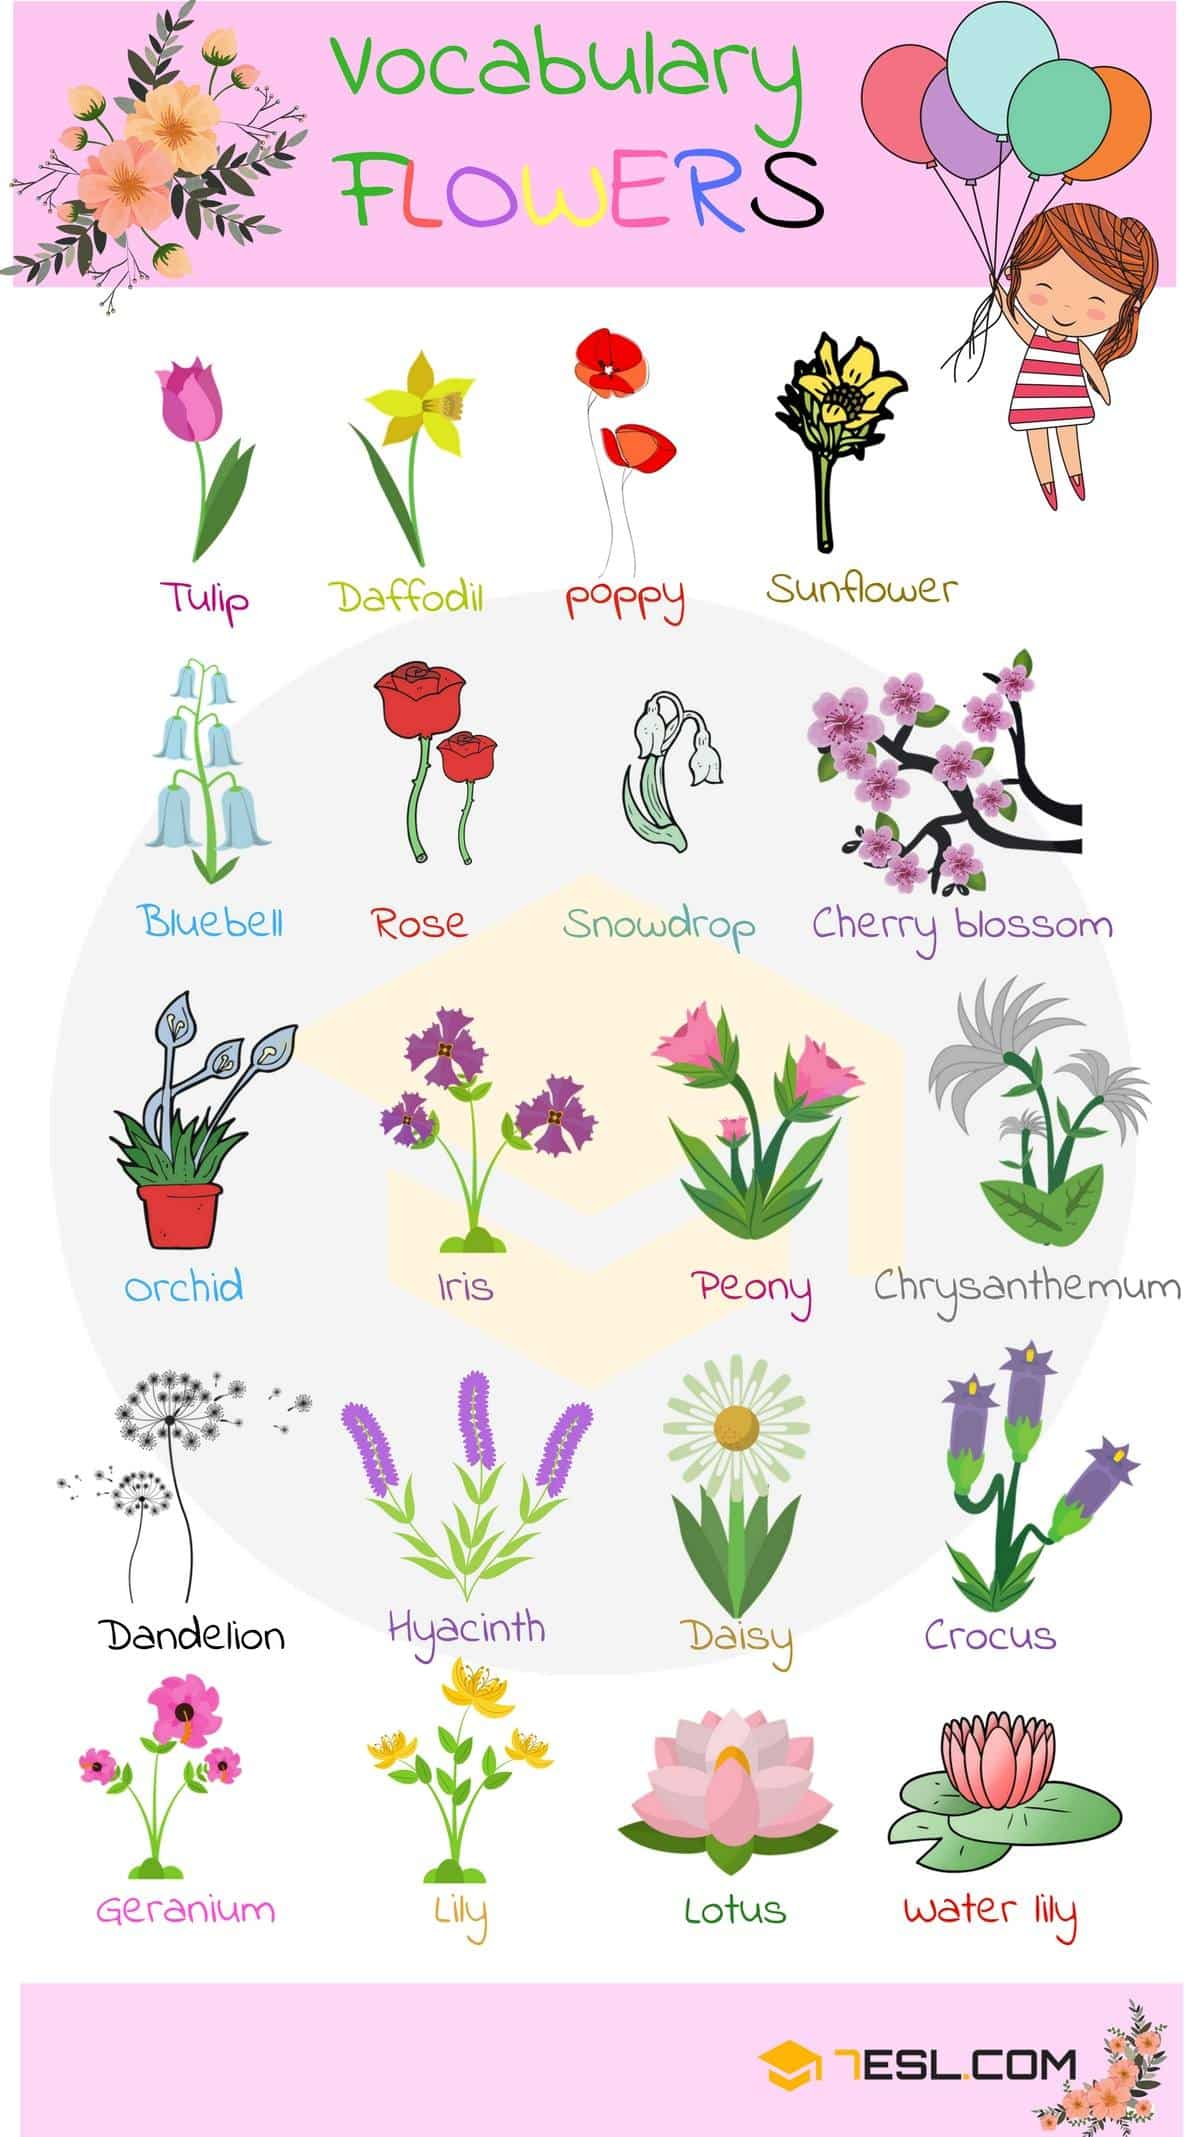 List of Flowers in English | Flowers Images